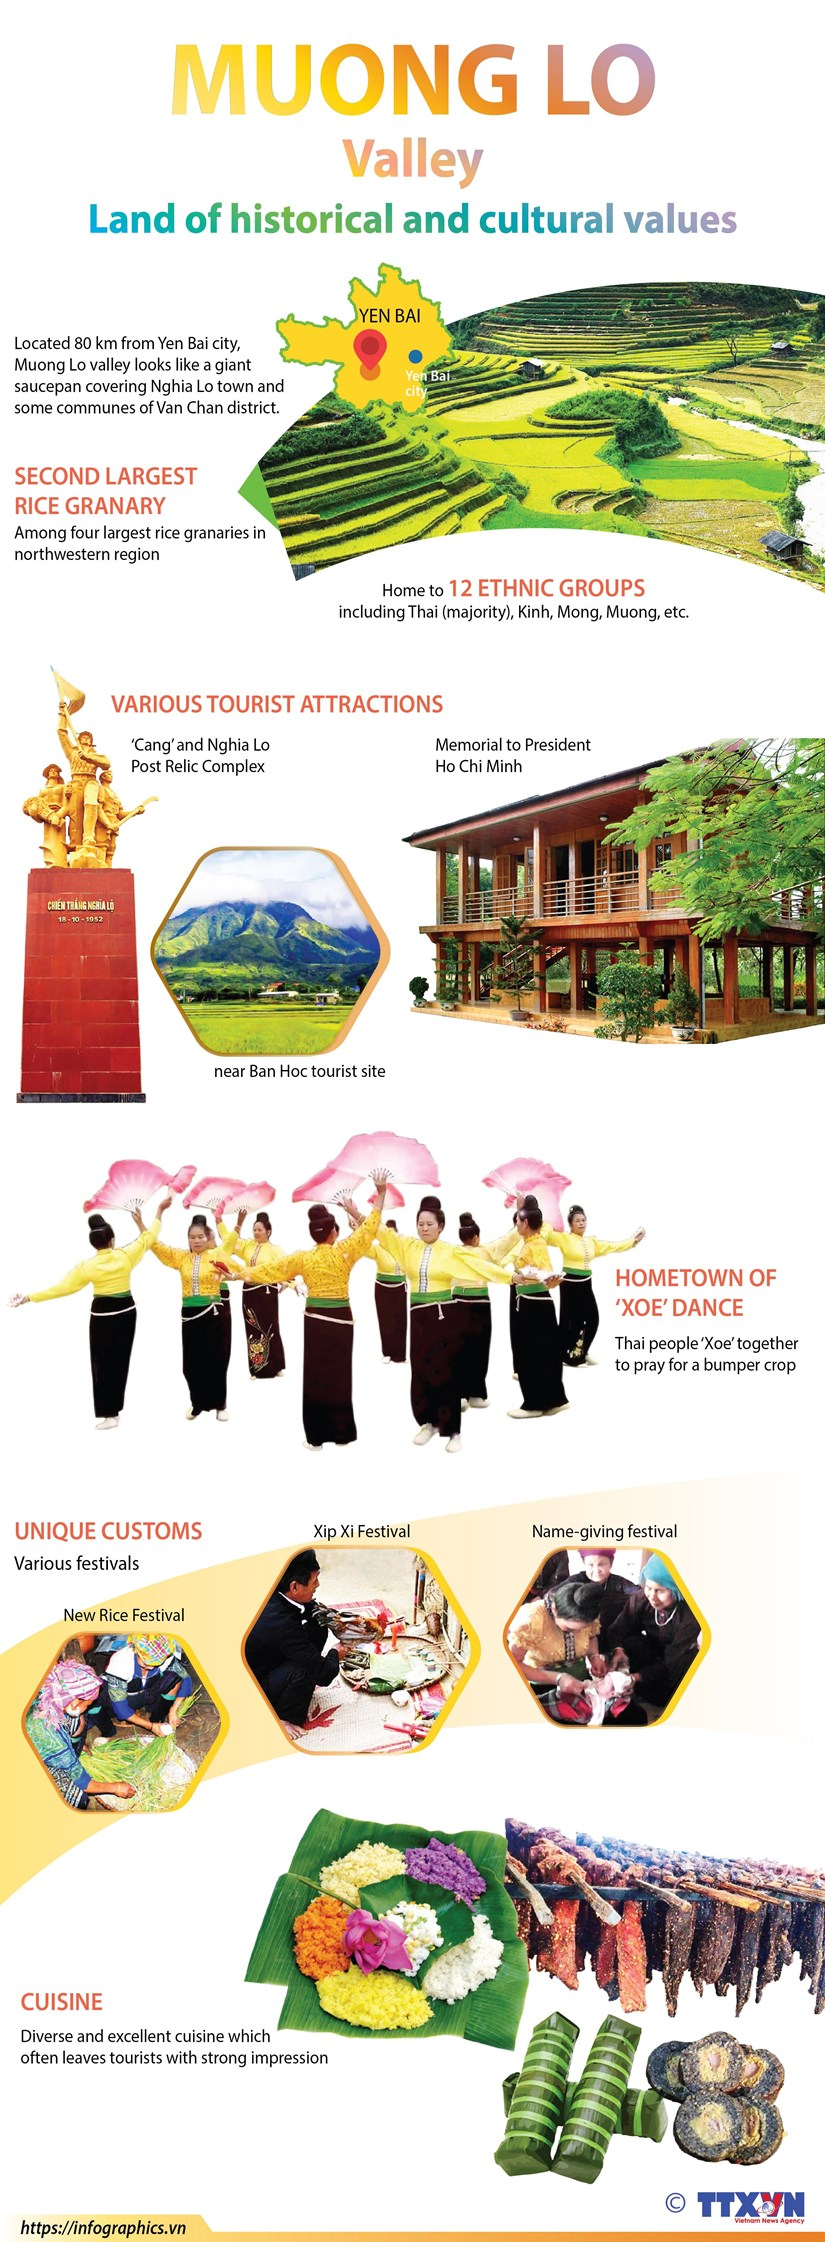 Muong Lo valley: Land of historical and cultural values hinh anh 1